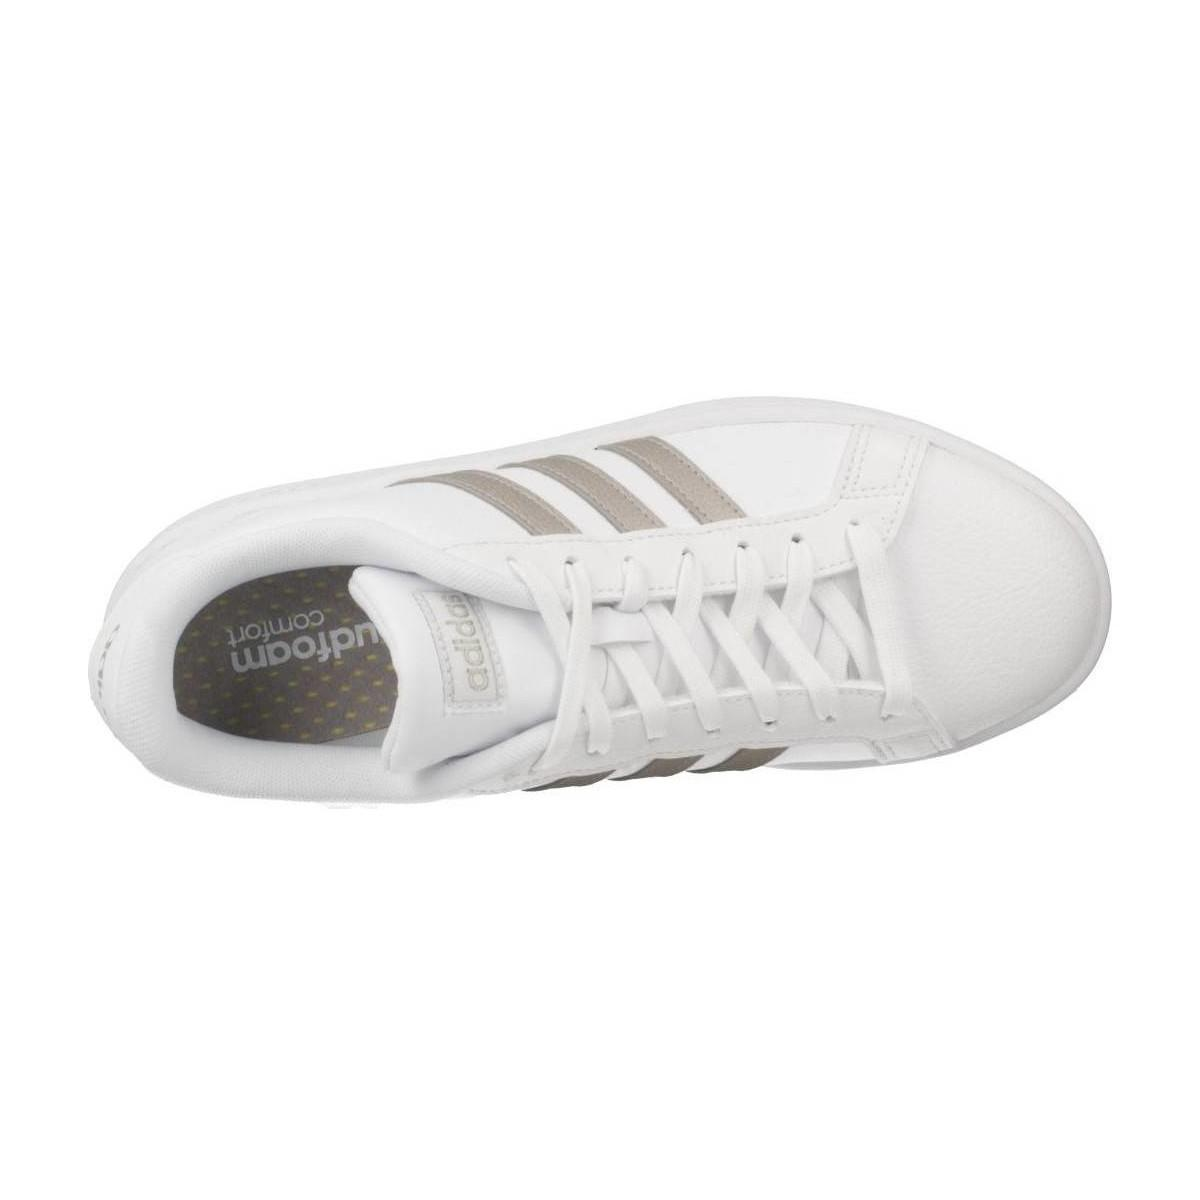 premium selection 56533 96498 adidas Grand Court Women s Shoes (trainers) In White in White - Lyst